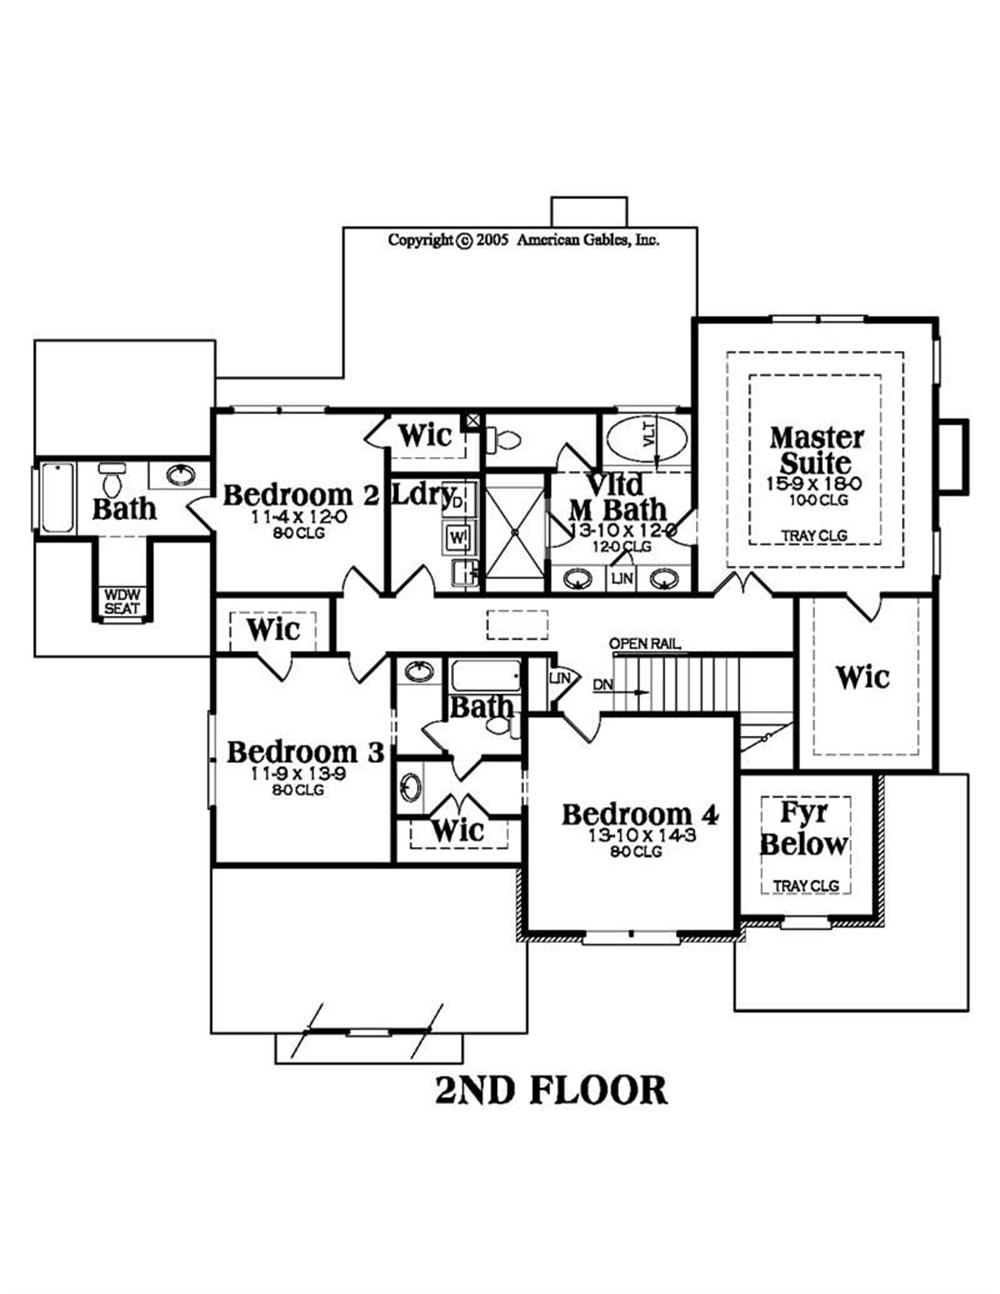 House Plan AG-Magnolia Second Floor Plan